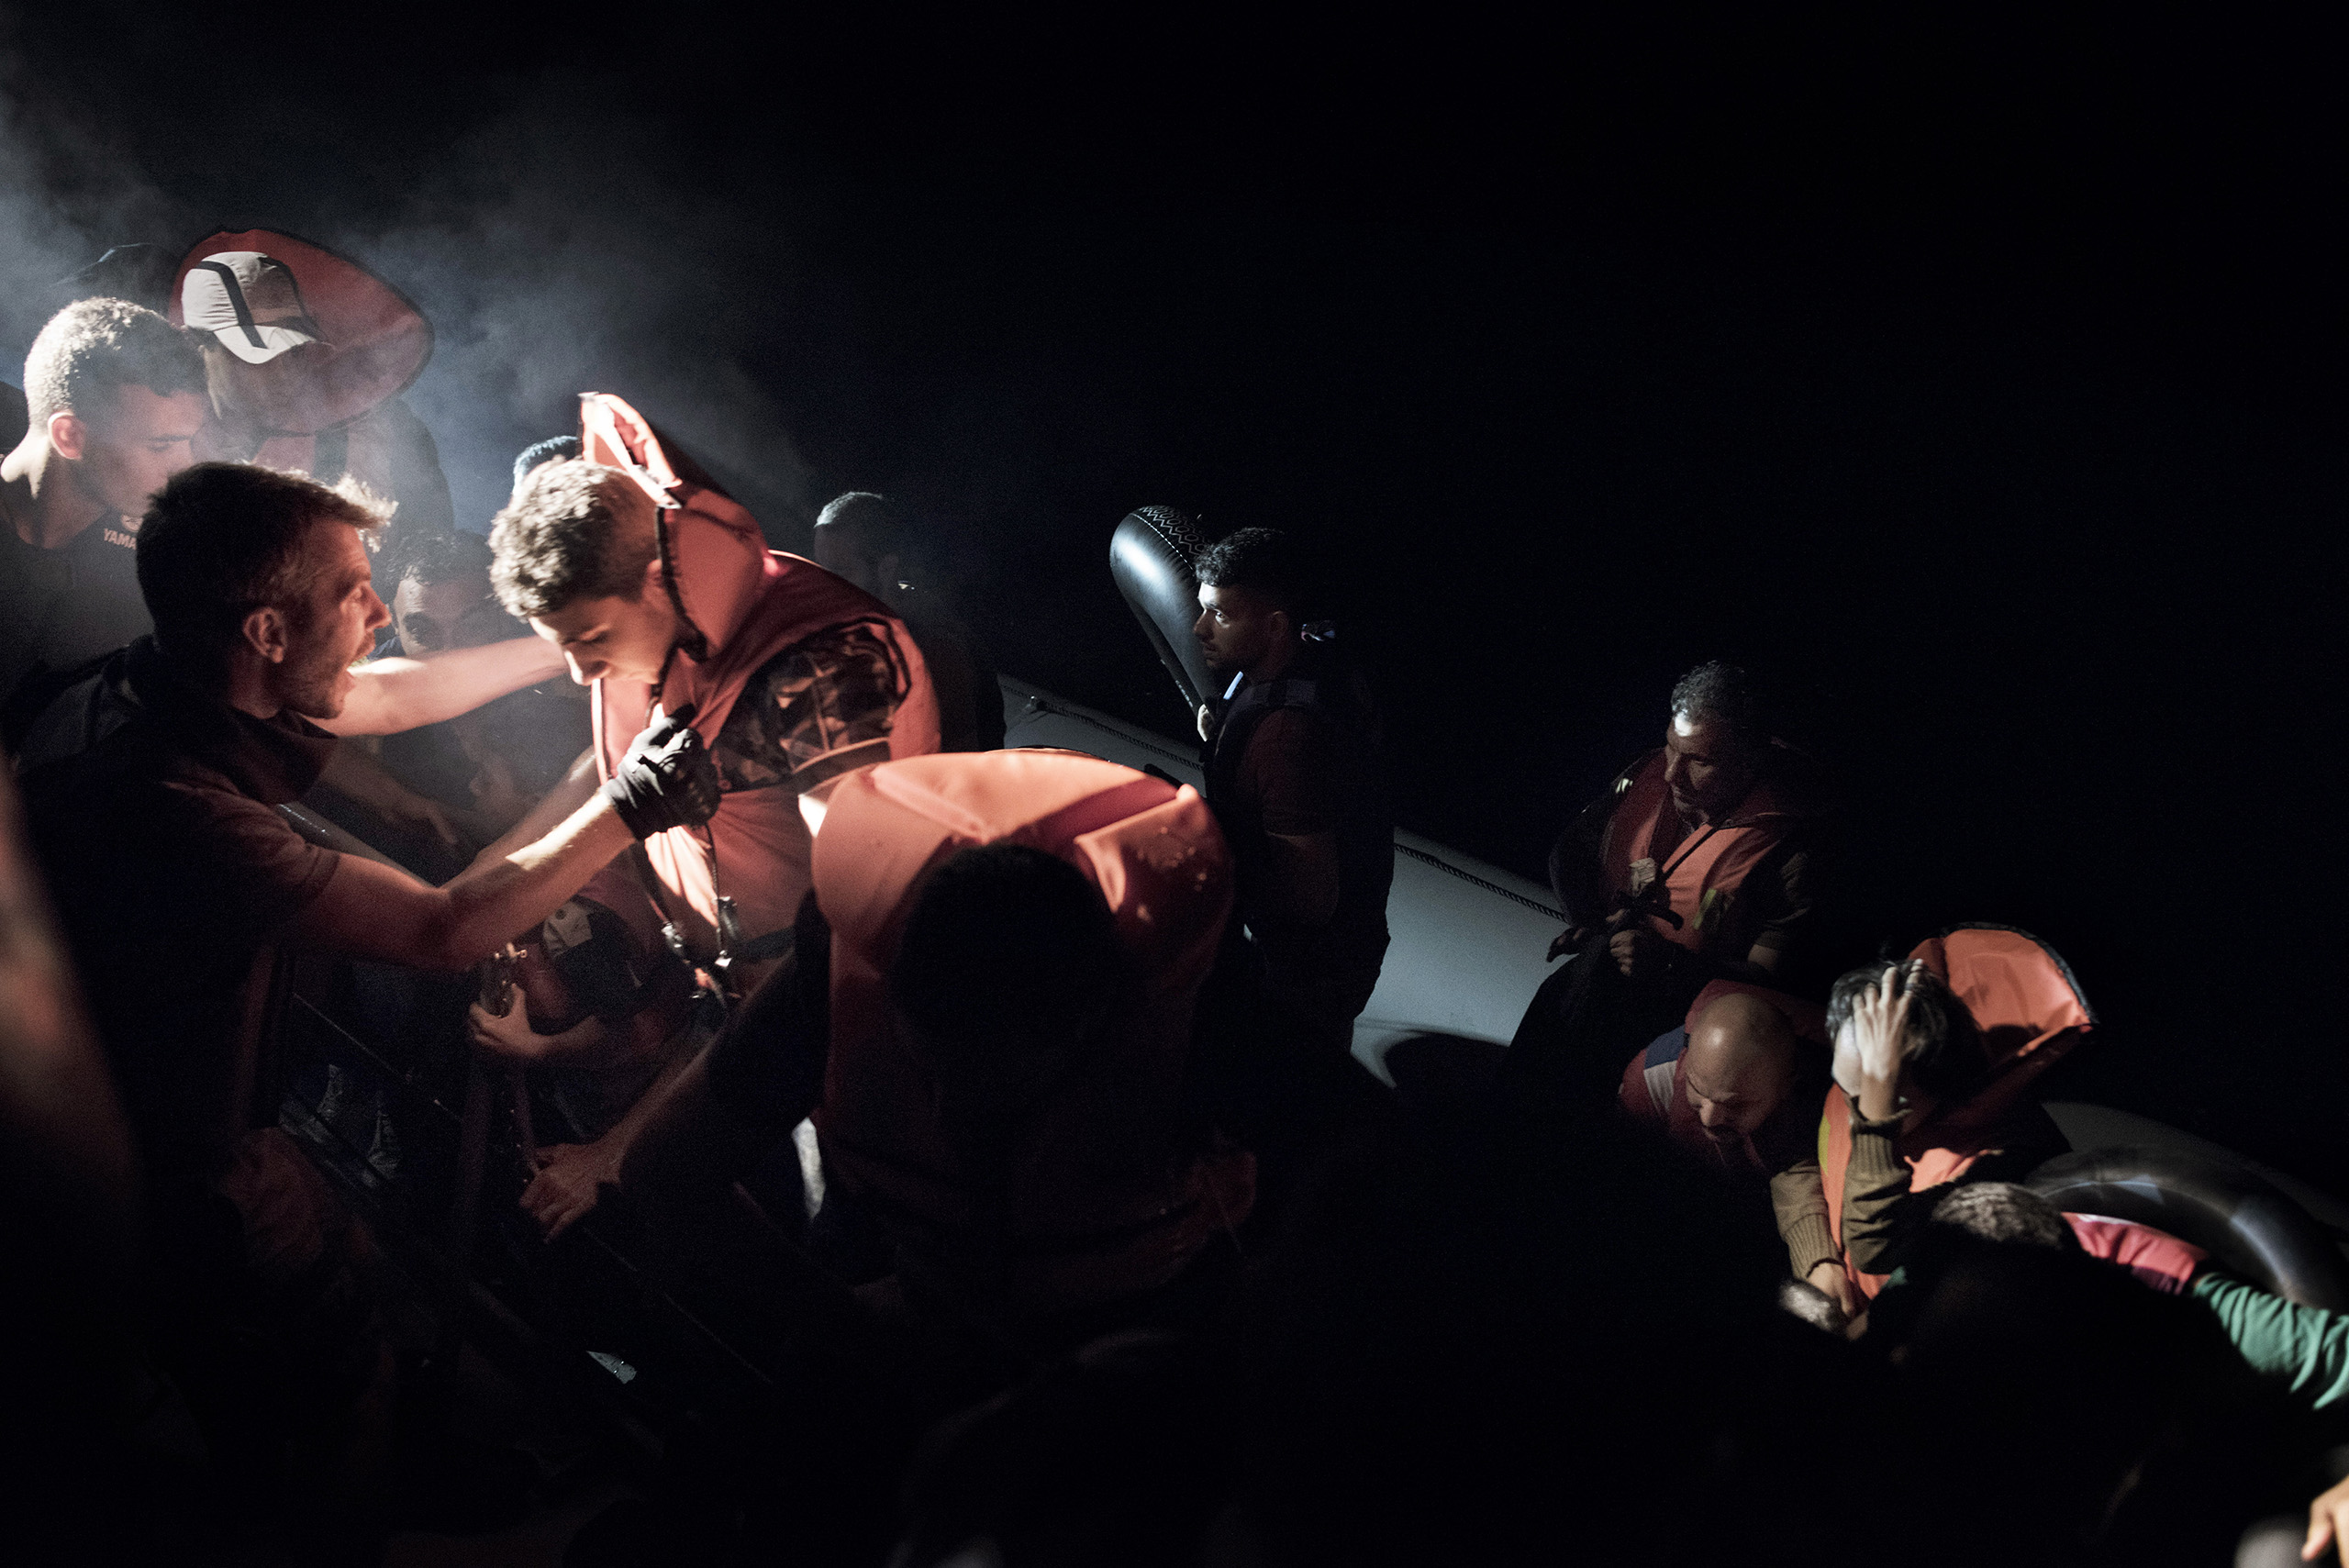 Syrian migrants scramble aboard a Greek coast guard vessel from the rubber motorboat they were using to cross from Turkey to the Greek islands. The coast guards have orders to rescue any migrant boats they find during night patrols of the Aegean Sea and bring them to Greece for processing and registration. Sept. 7, 2015.